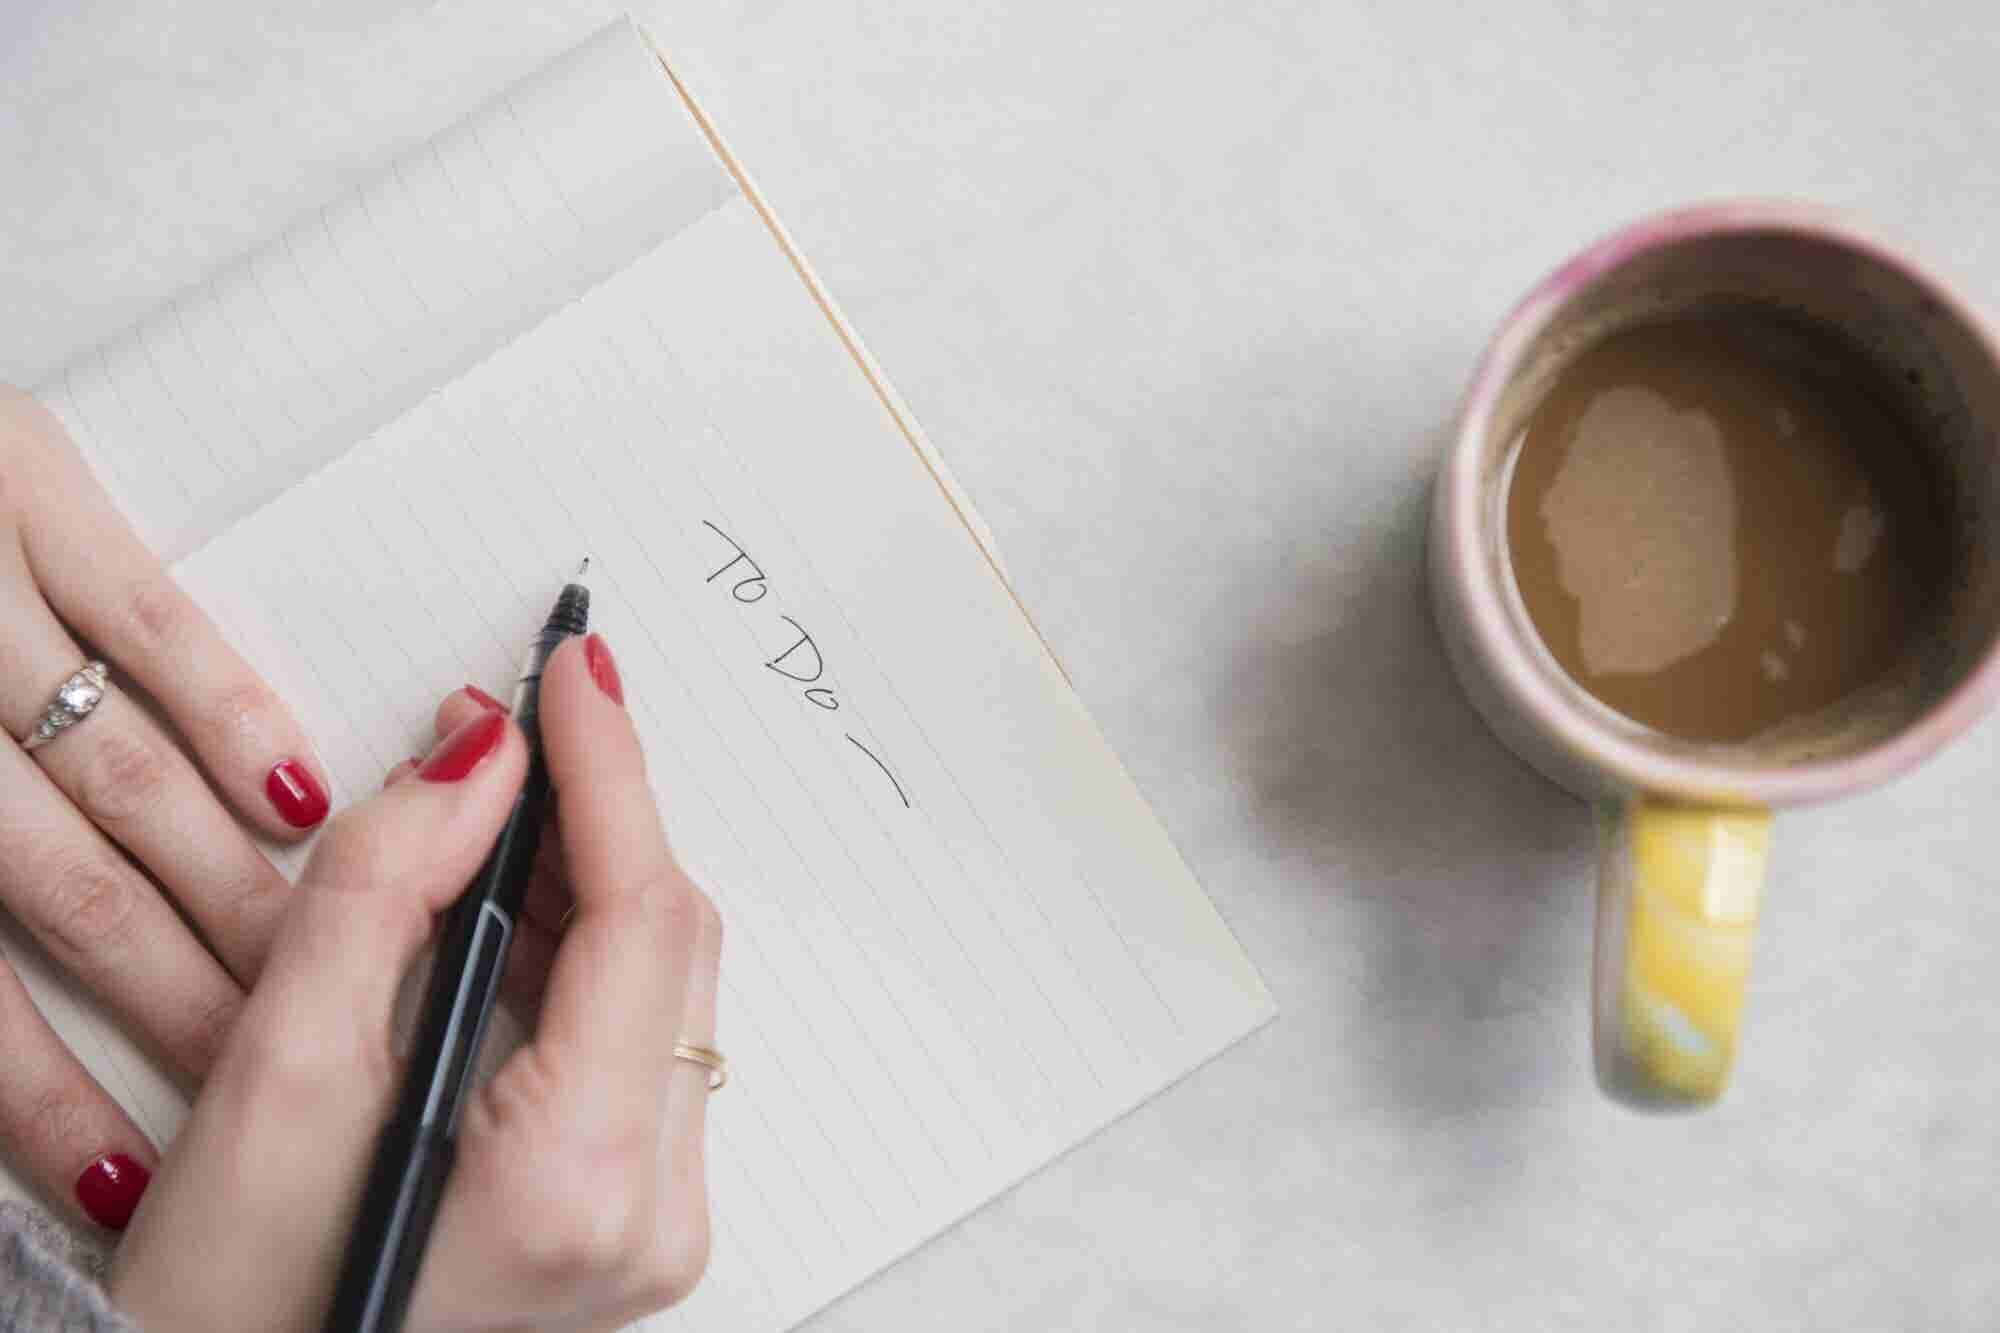 5 Tips to Improve Focus and Get Things Done